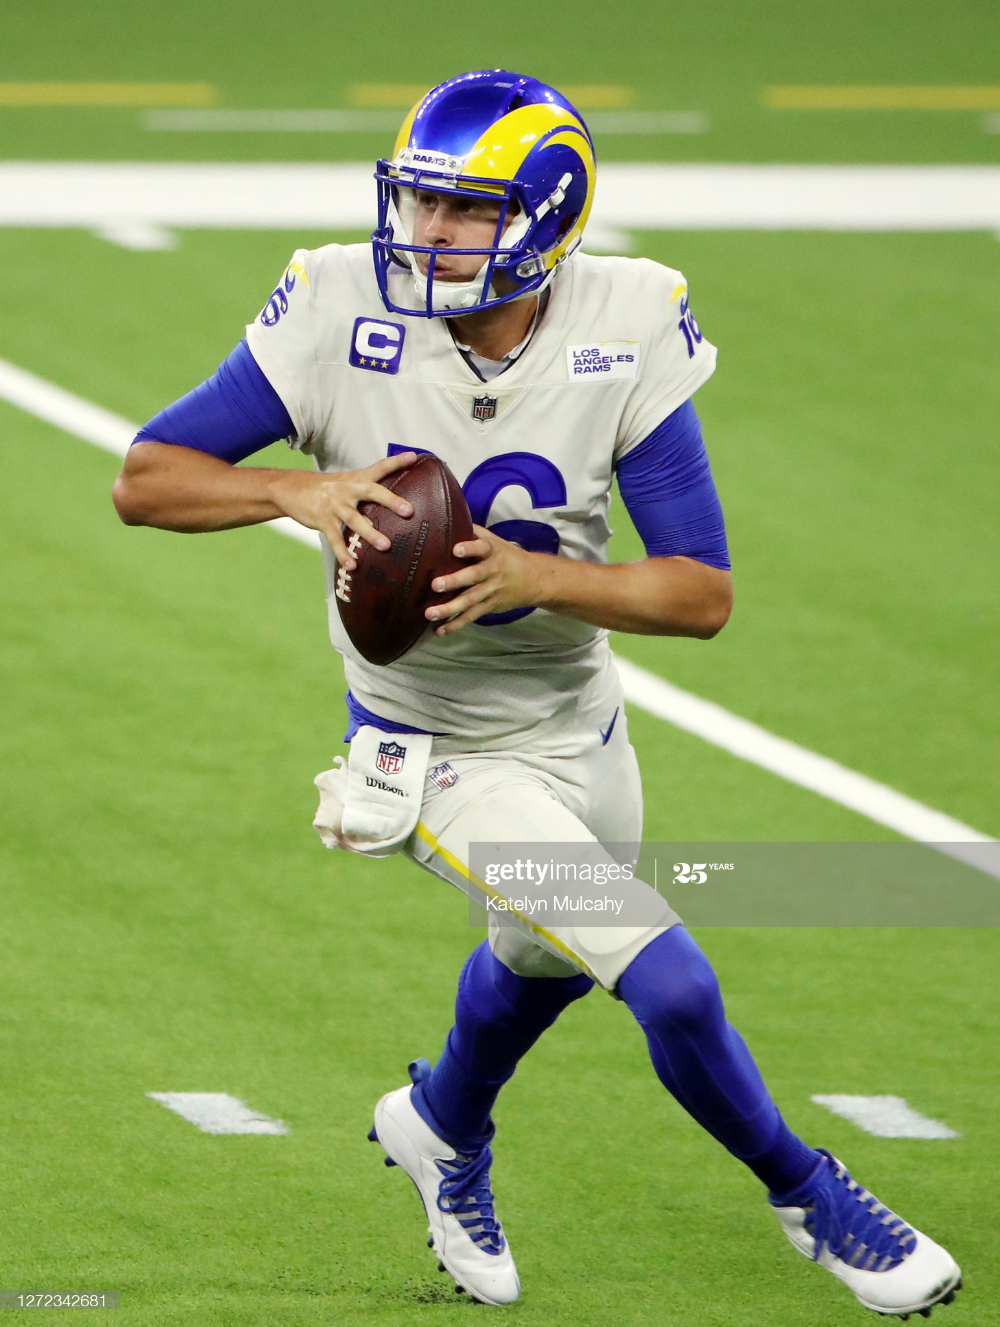 Jared Goff Of The Los Angeles Rams Looks To Pass During The Second In 2020 Jared Goff Jared Goffs